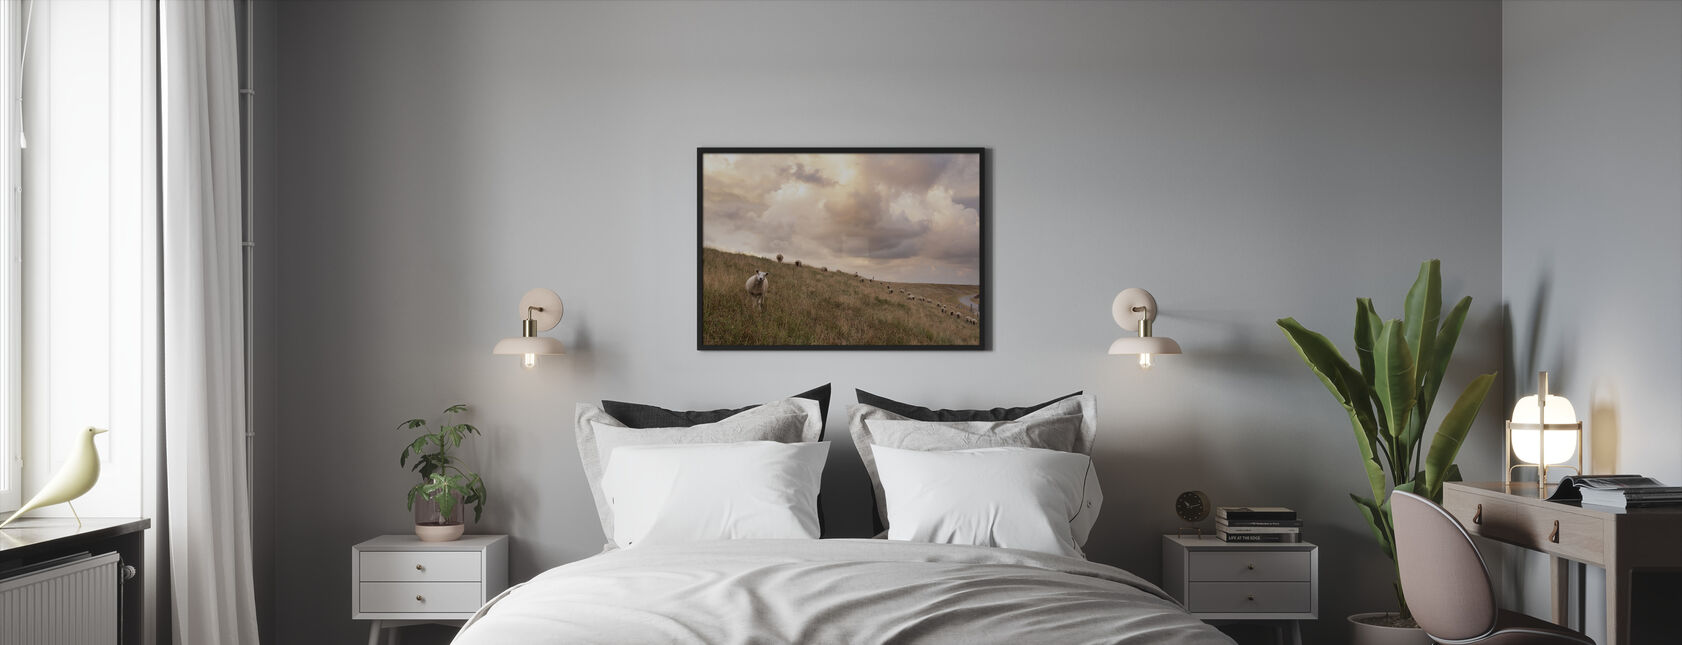 Attentive Sheep - Framed print - Bedroom